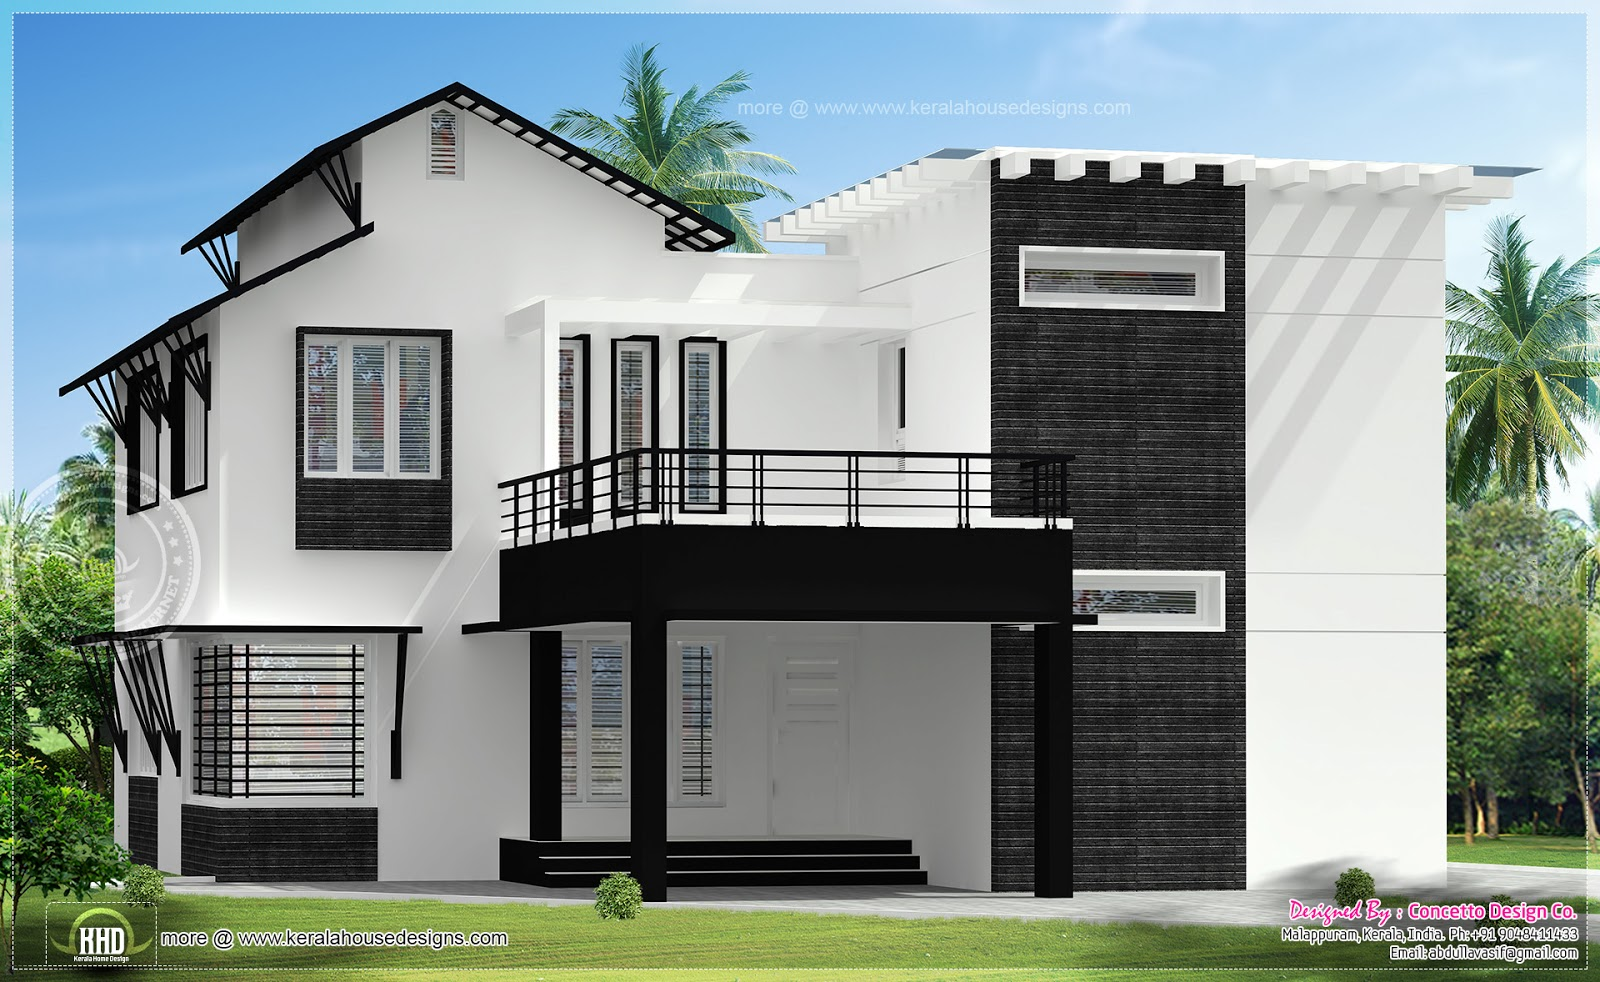 5 different house exteriors by concetto design house design plans Home design and layout